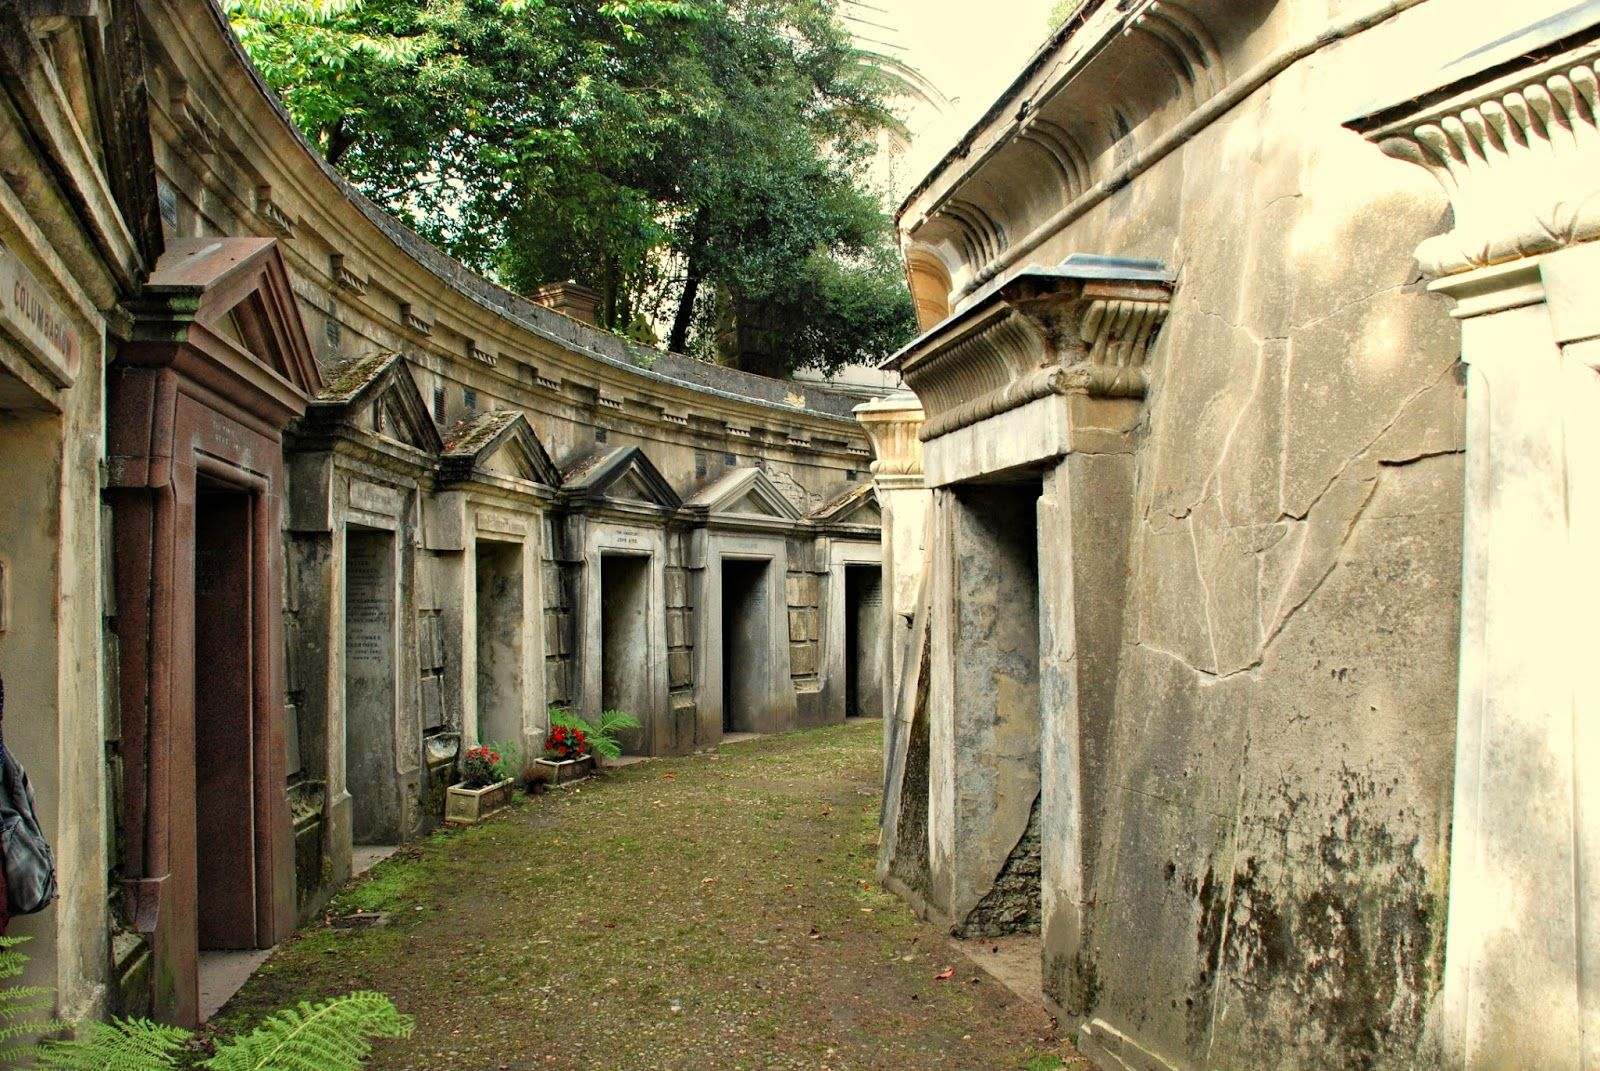 The Circle of Lebanon, Highgate Cemetery, London http